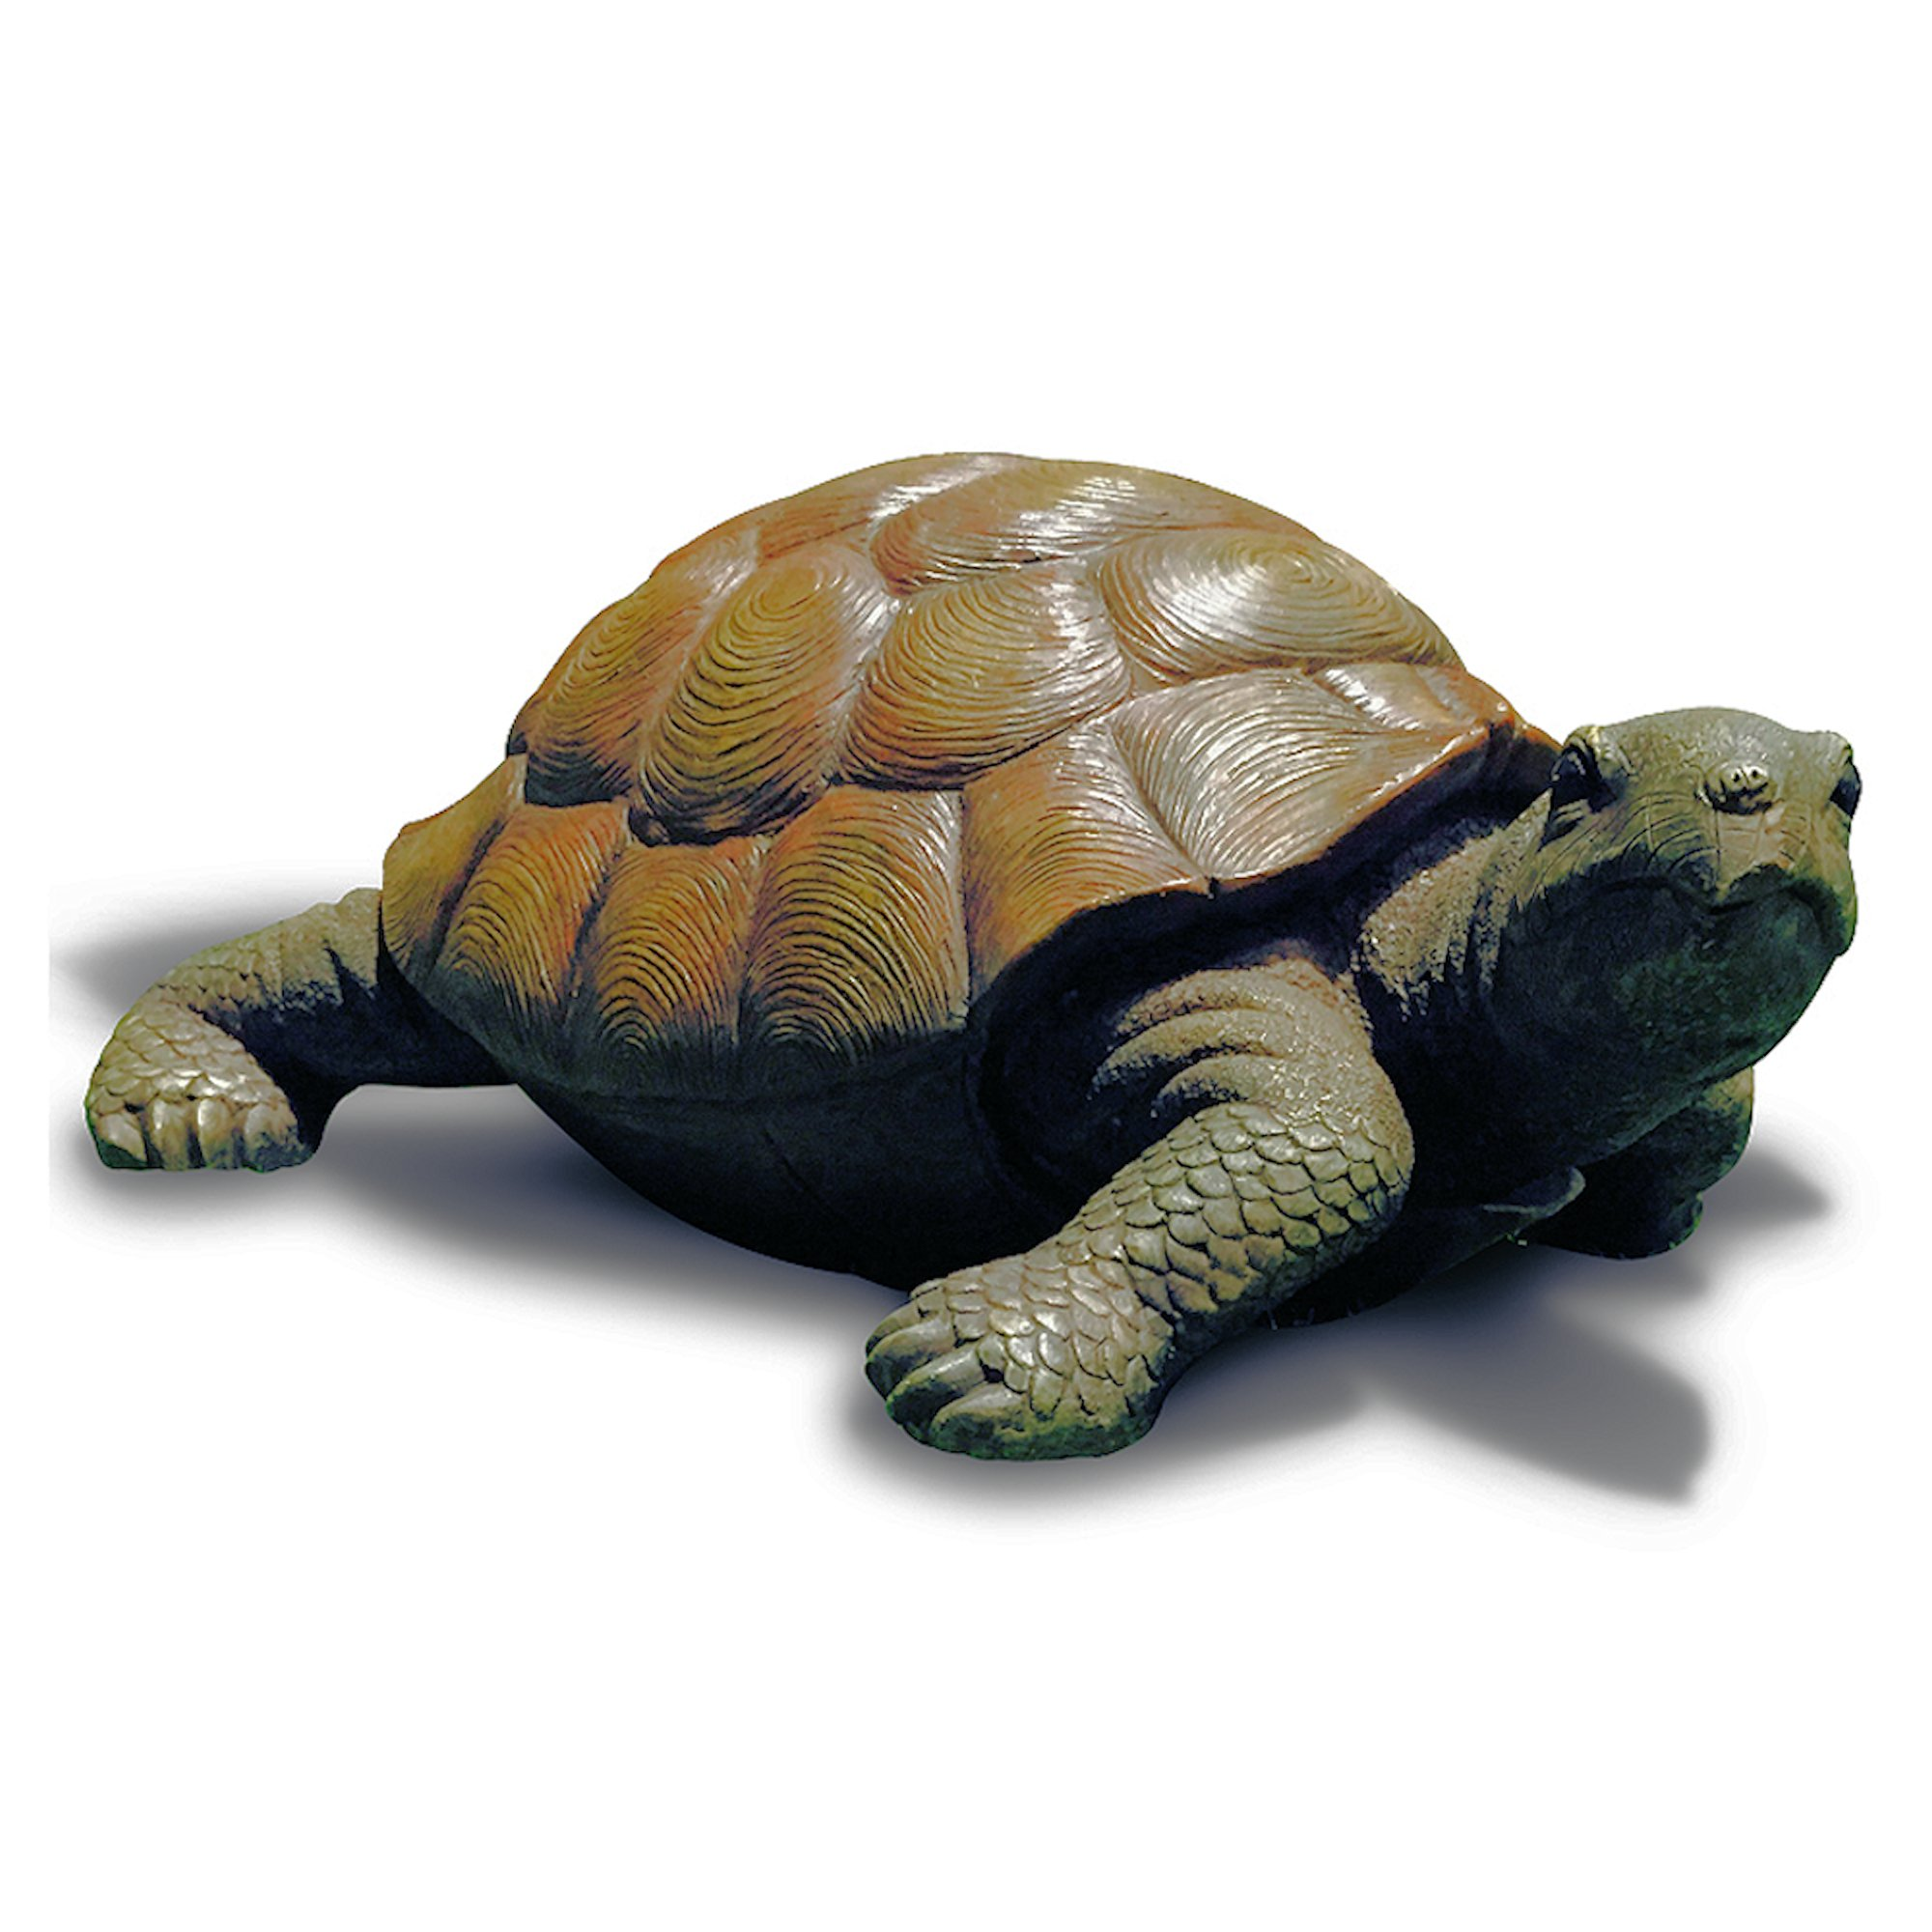 Whw Whole House Worlds Toby Turtle Ultra Realistic Outdoor Garden